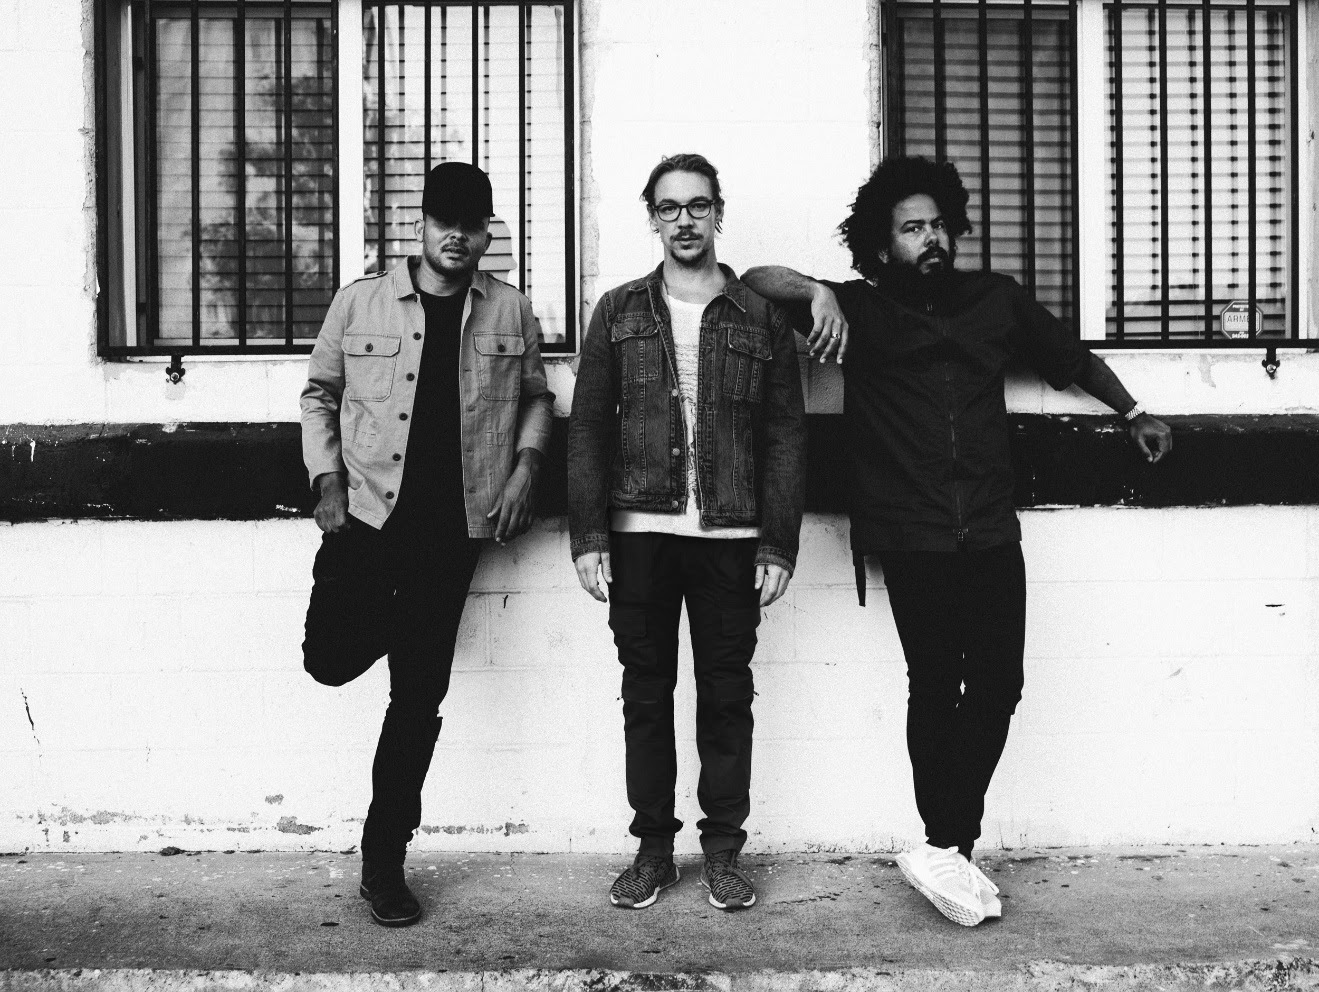 Major Lazer has surprise-released a new 6 track EP.